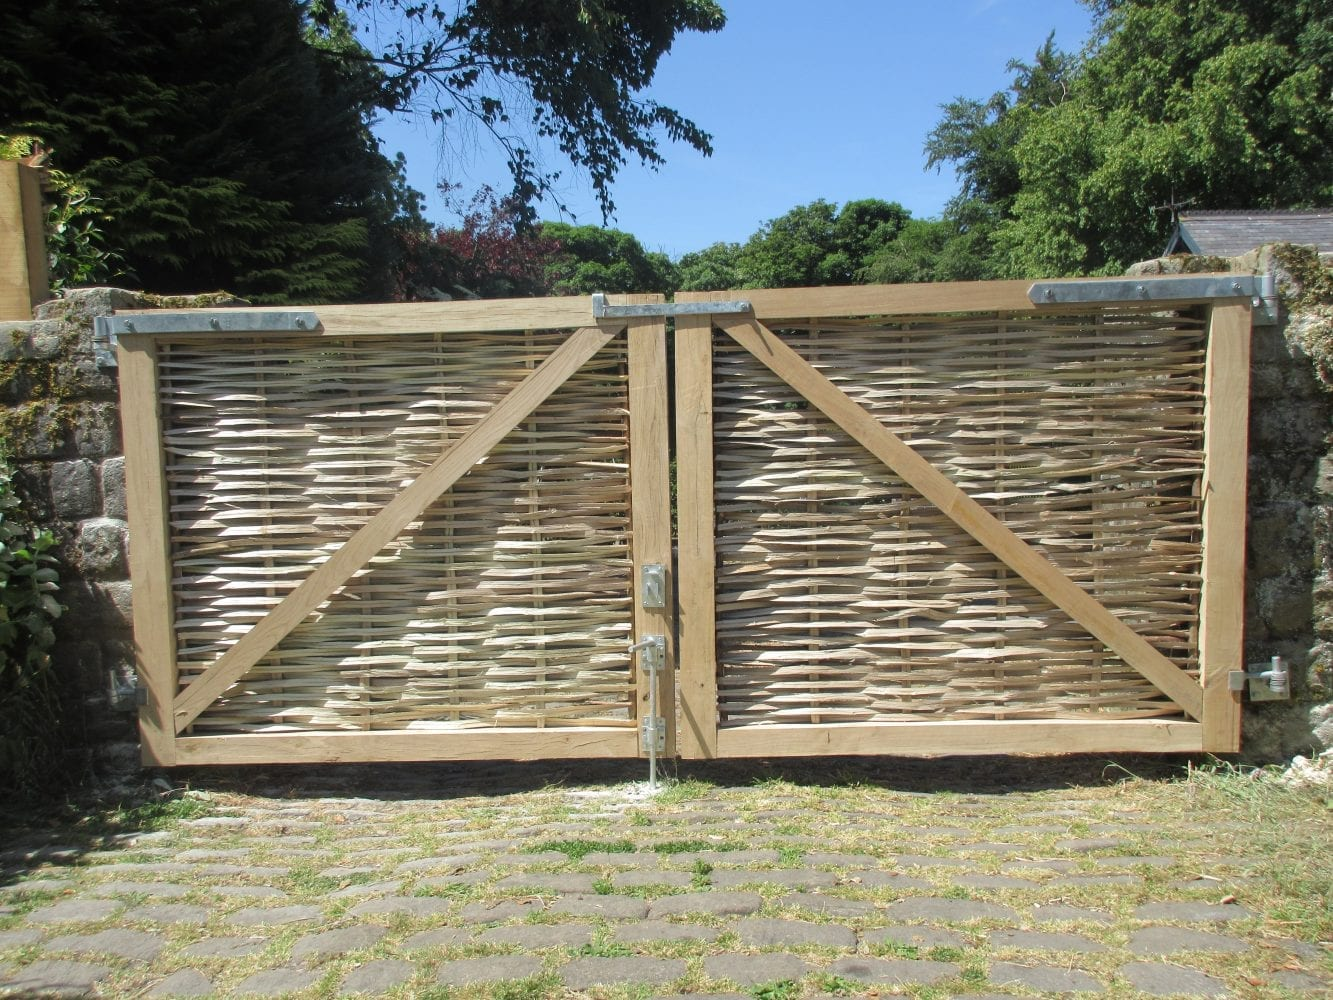 <span>Ref: F40</span><br>The reverse view of the previous gates showing the substantial oak frame and braces, with metal work included in price.